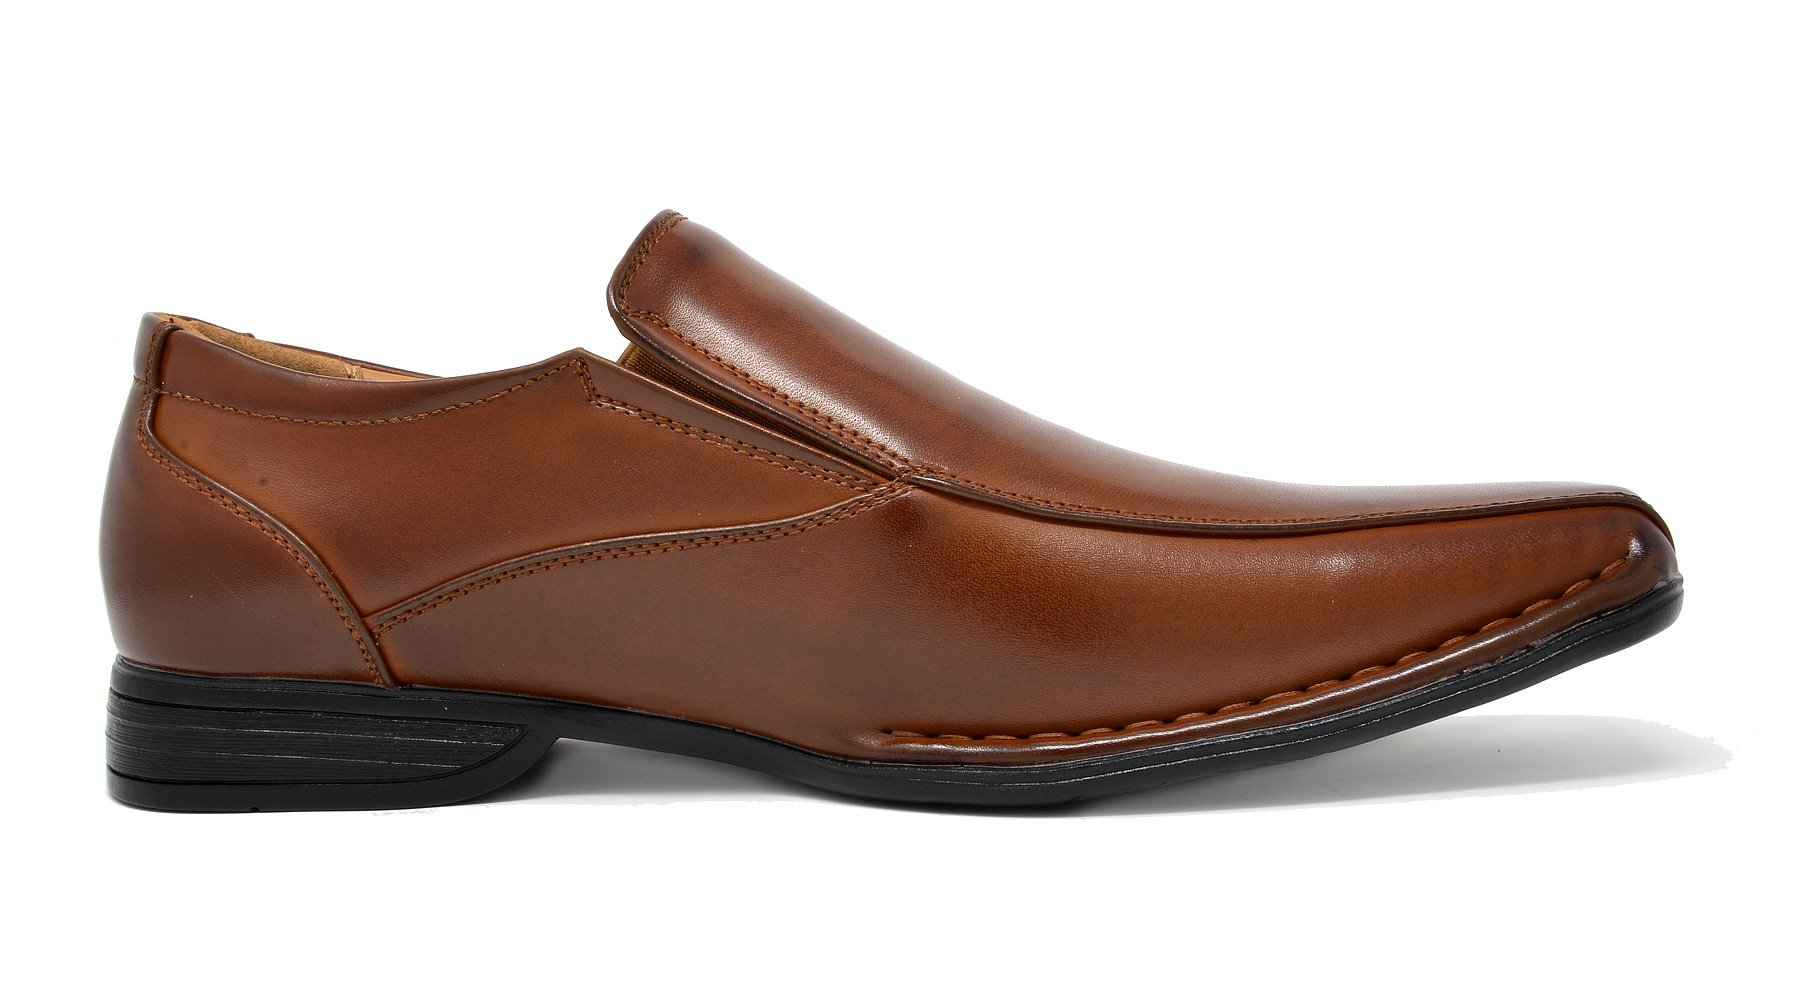 Bruno Marc Men's Giorgio-1 Brown Leather Lined Dress Loafers Shoes - 11 M US by BRUNO MARC NEW YORK (Image #3)